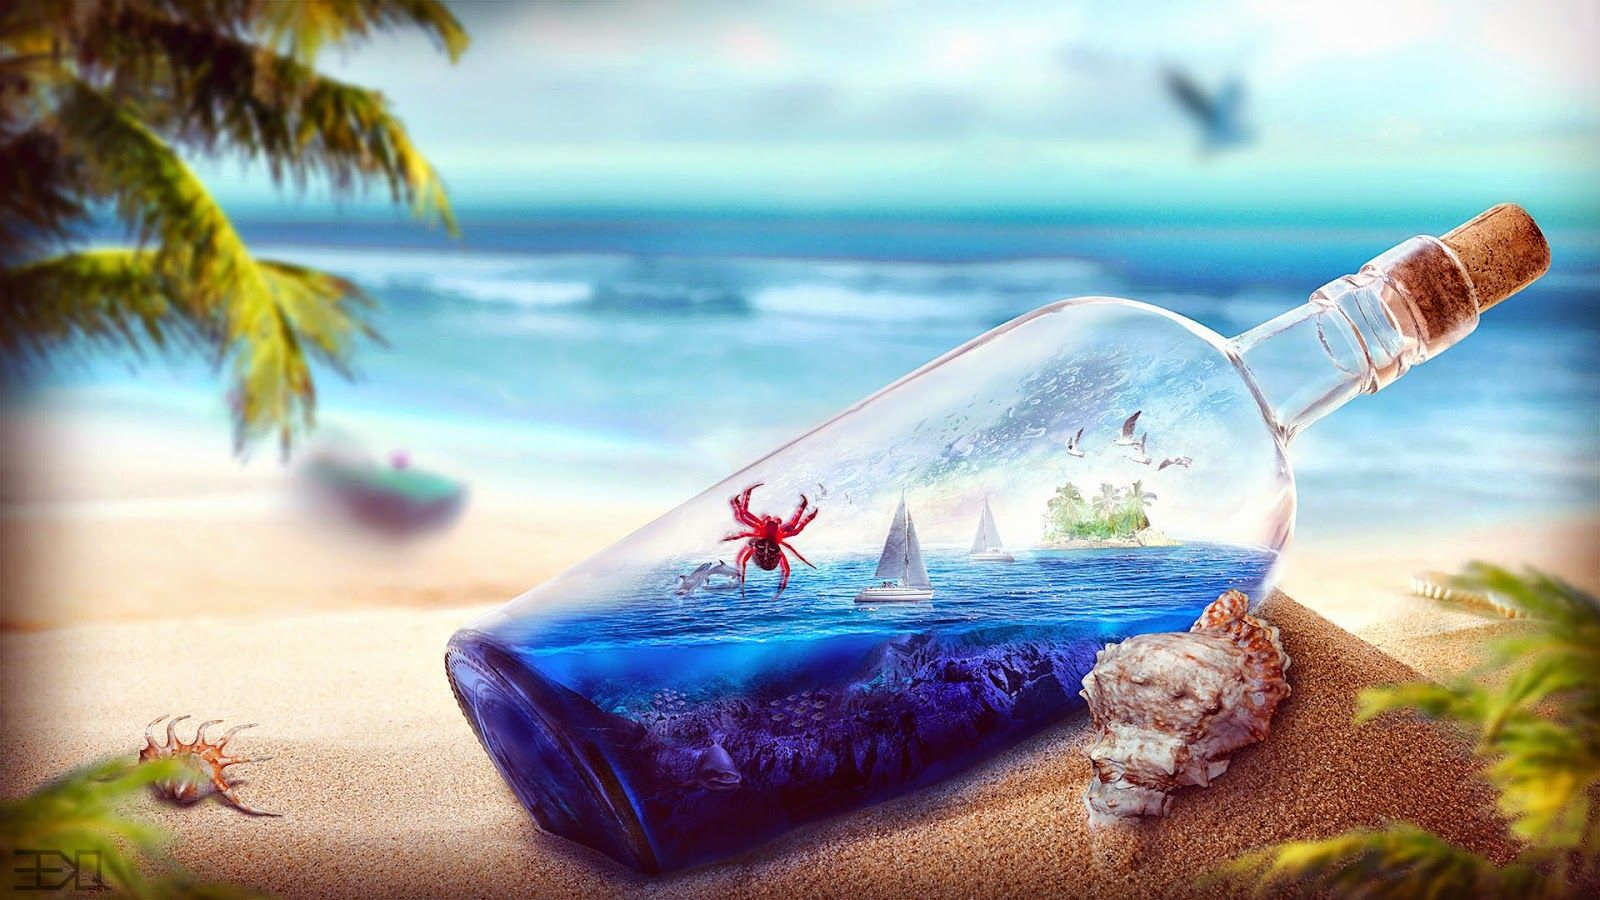 HD Creative Wallpapers - HD Wallpapers - High Quality Wallpapers | Backgrounds and Wallpapers ...